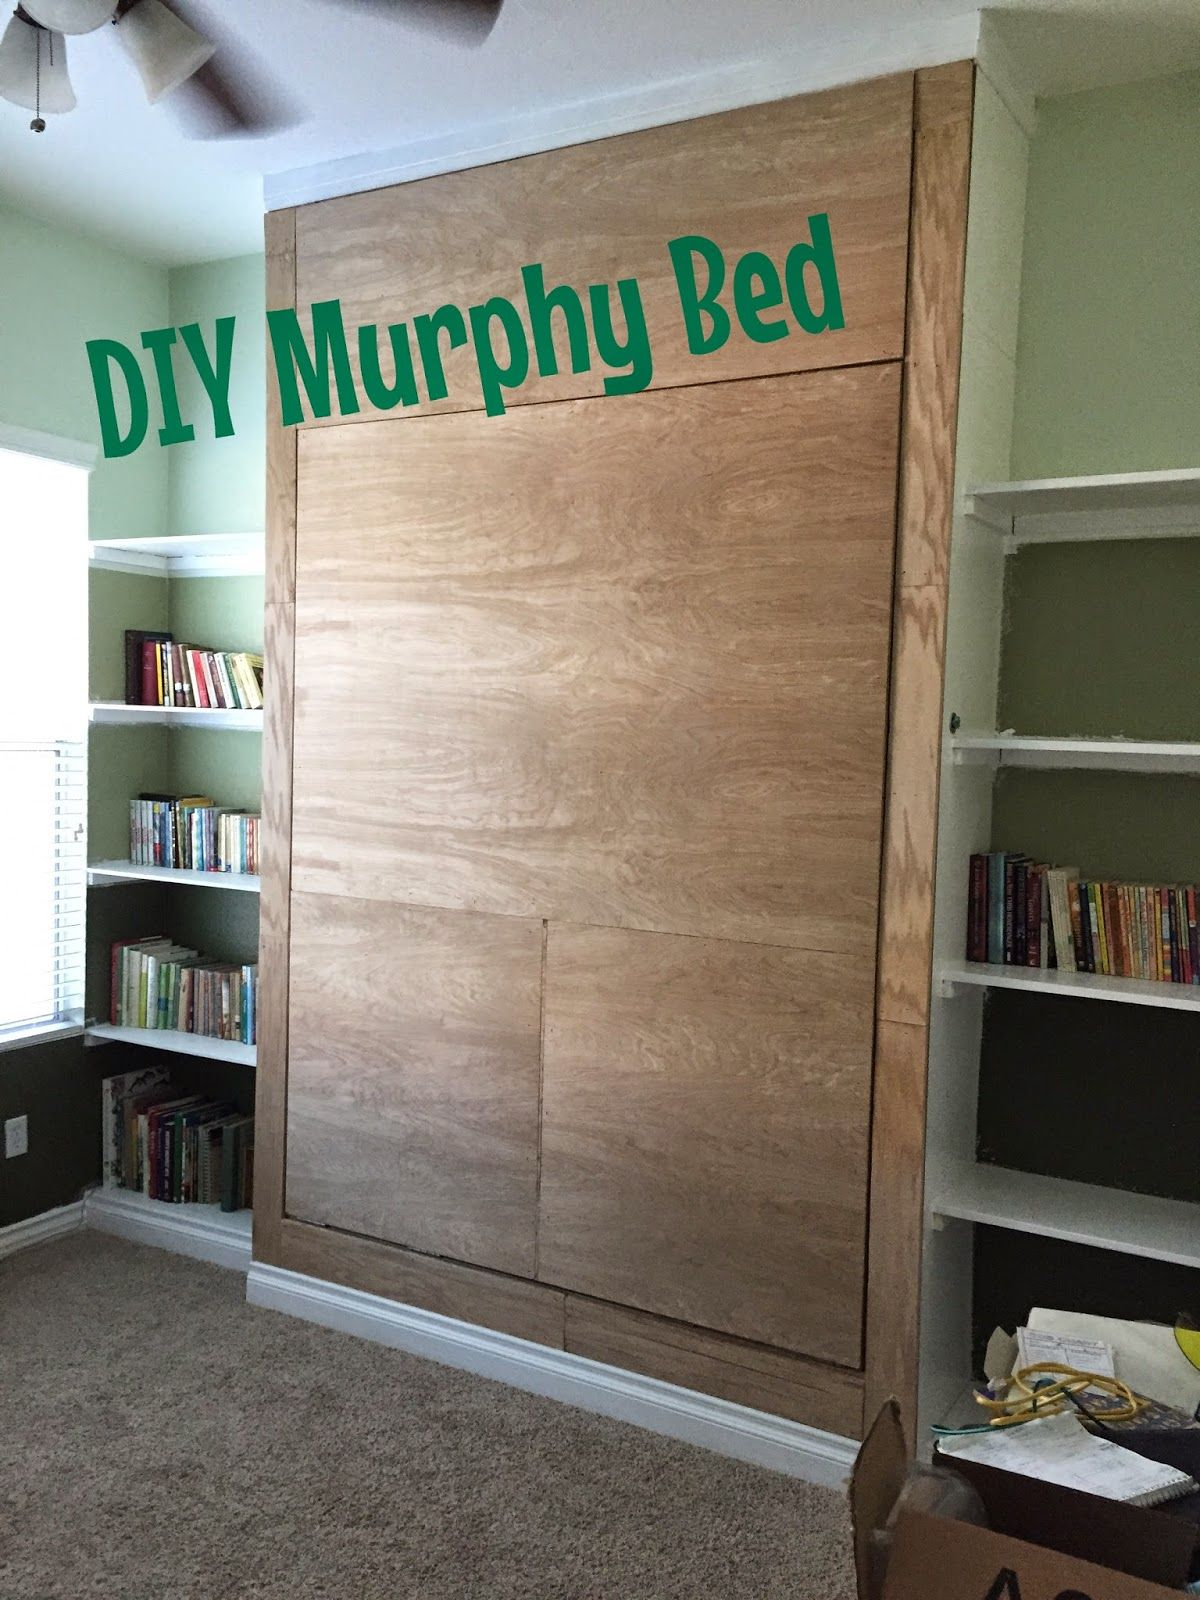 Murphy bed design plans -  Junk In Their Trunk Diy Murphy Bed Wall Bed Learn How